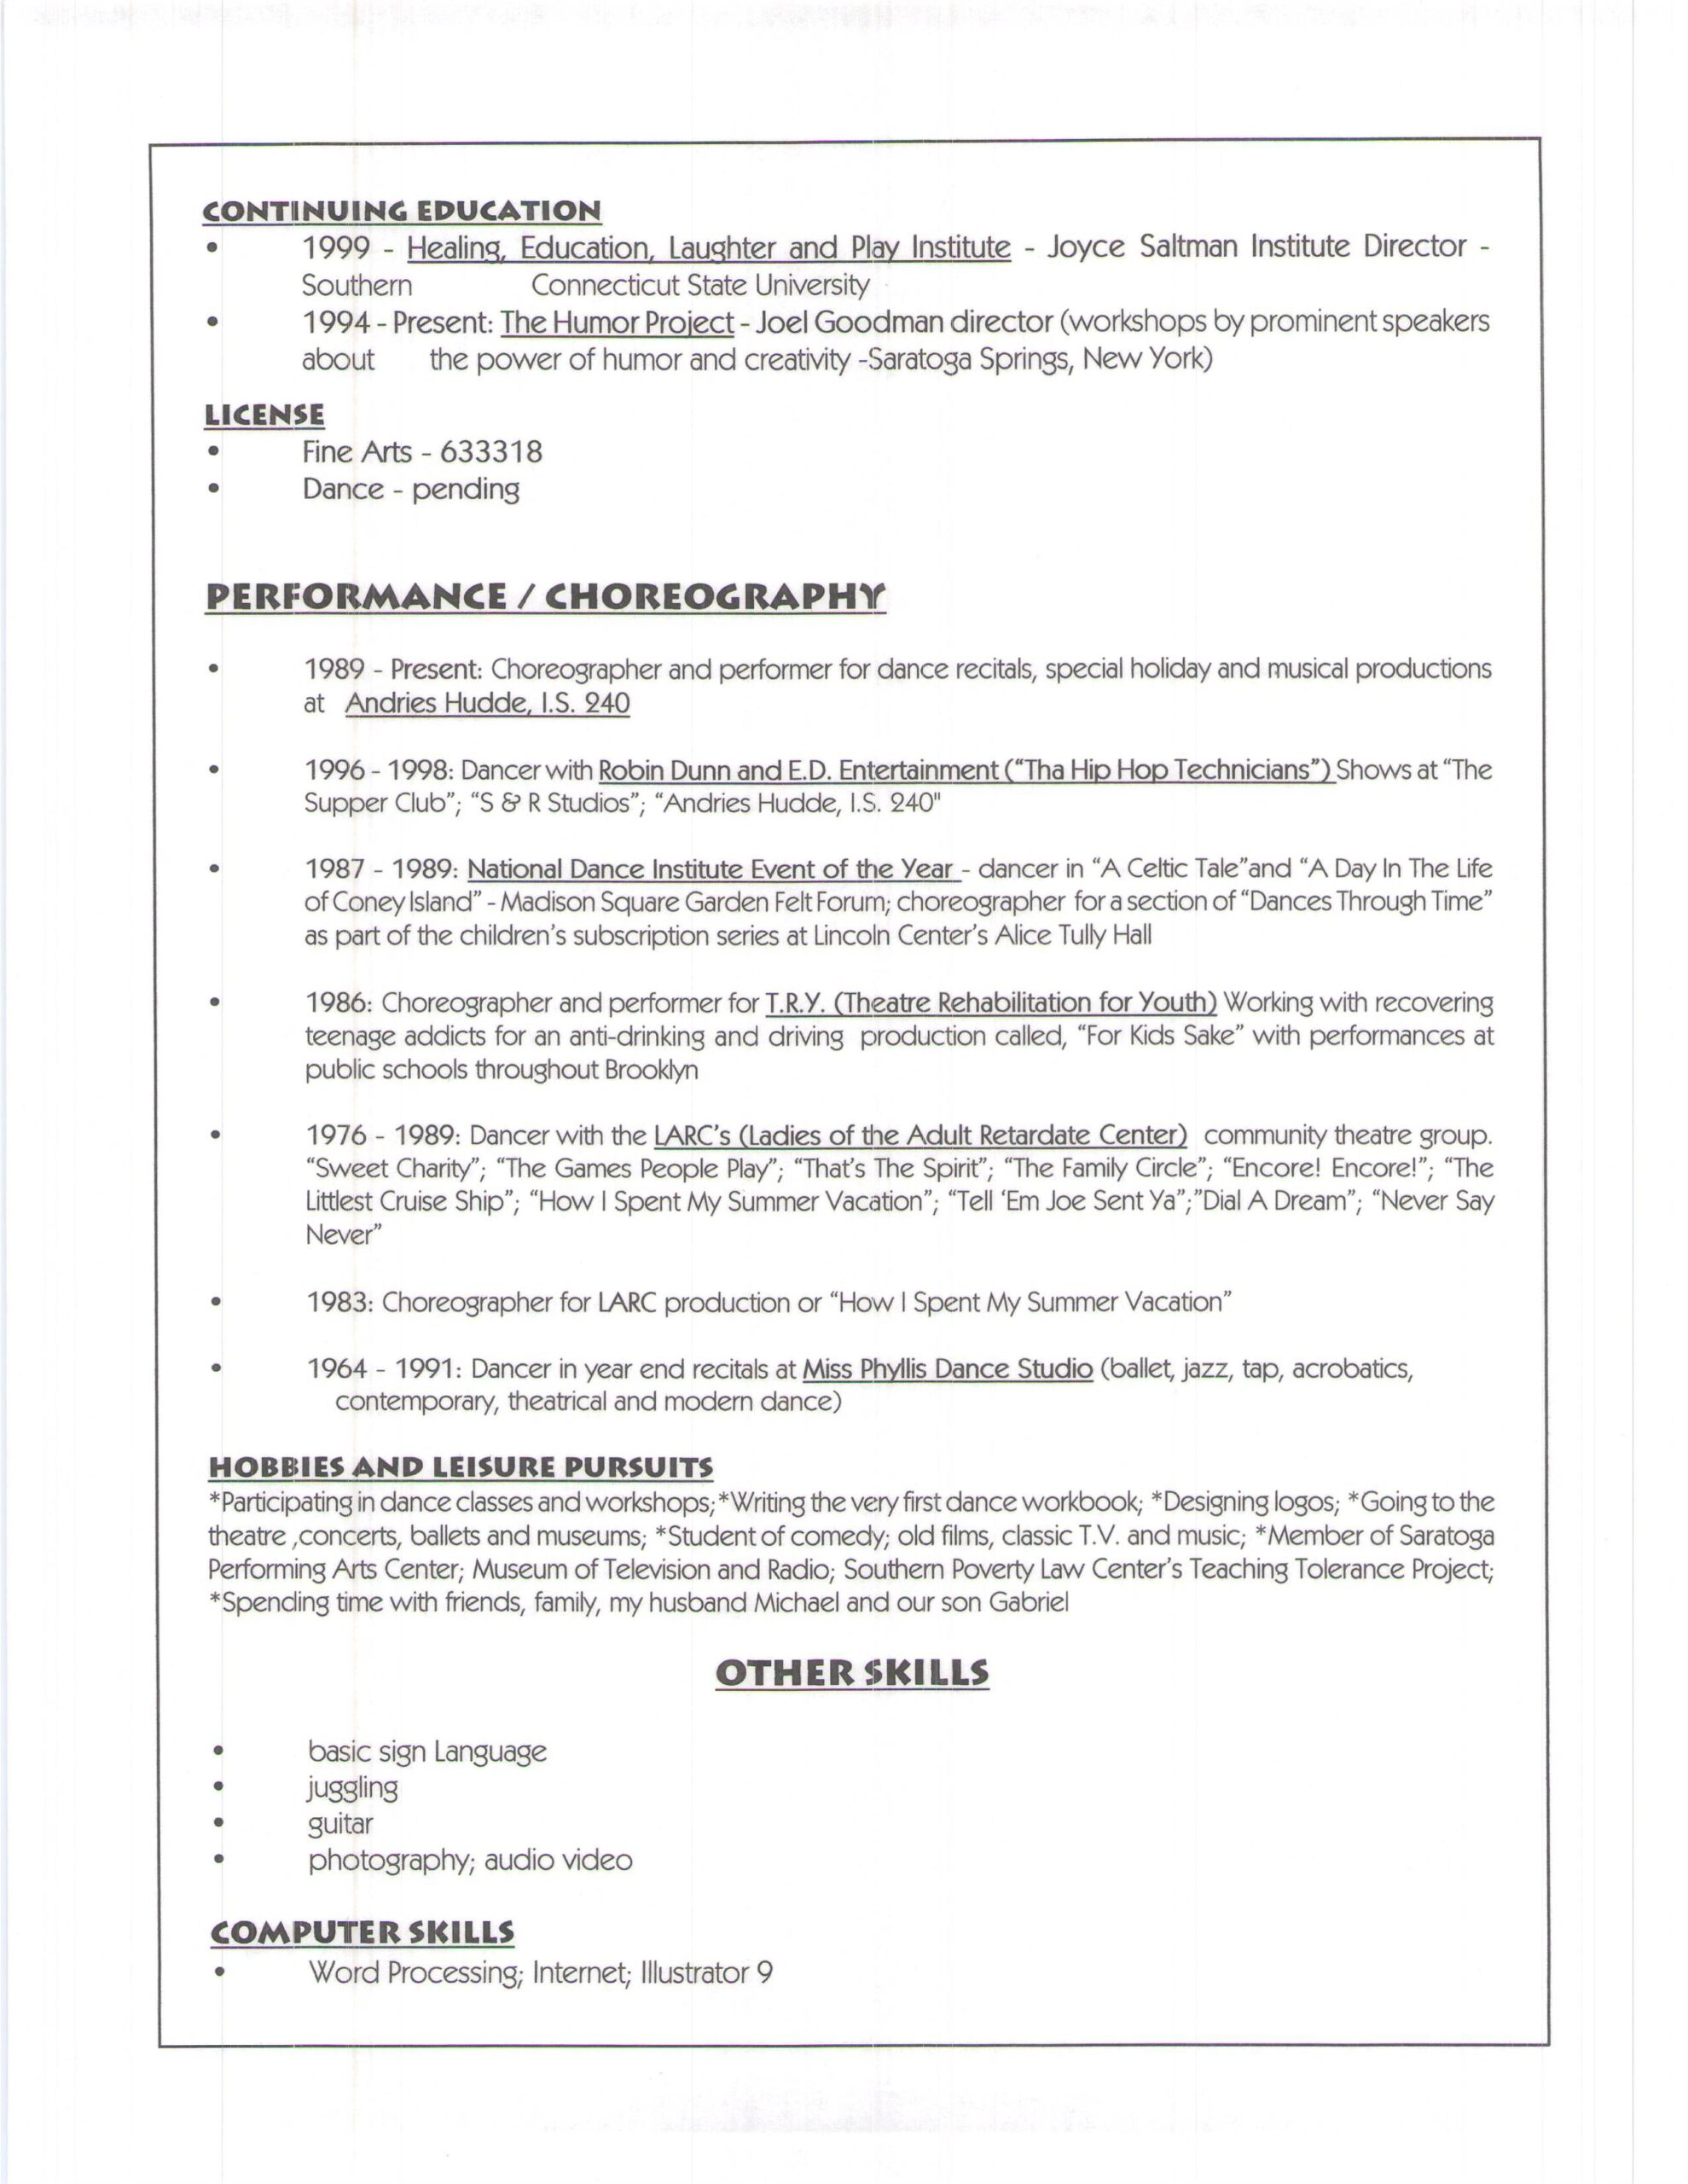 resume for jamee schleifer teacher files continuing education letter of recommendation on Resume Continuing Education On Resume